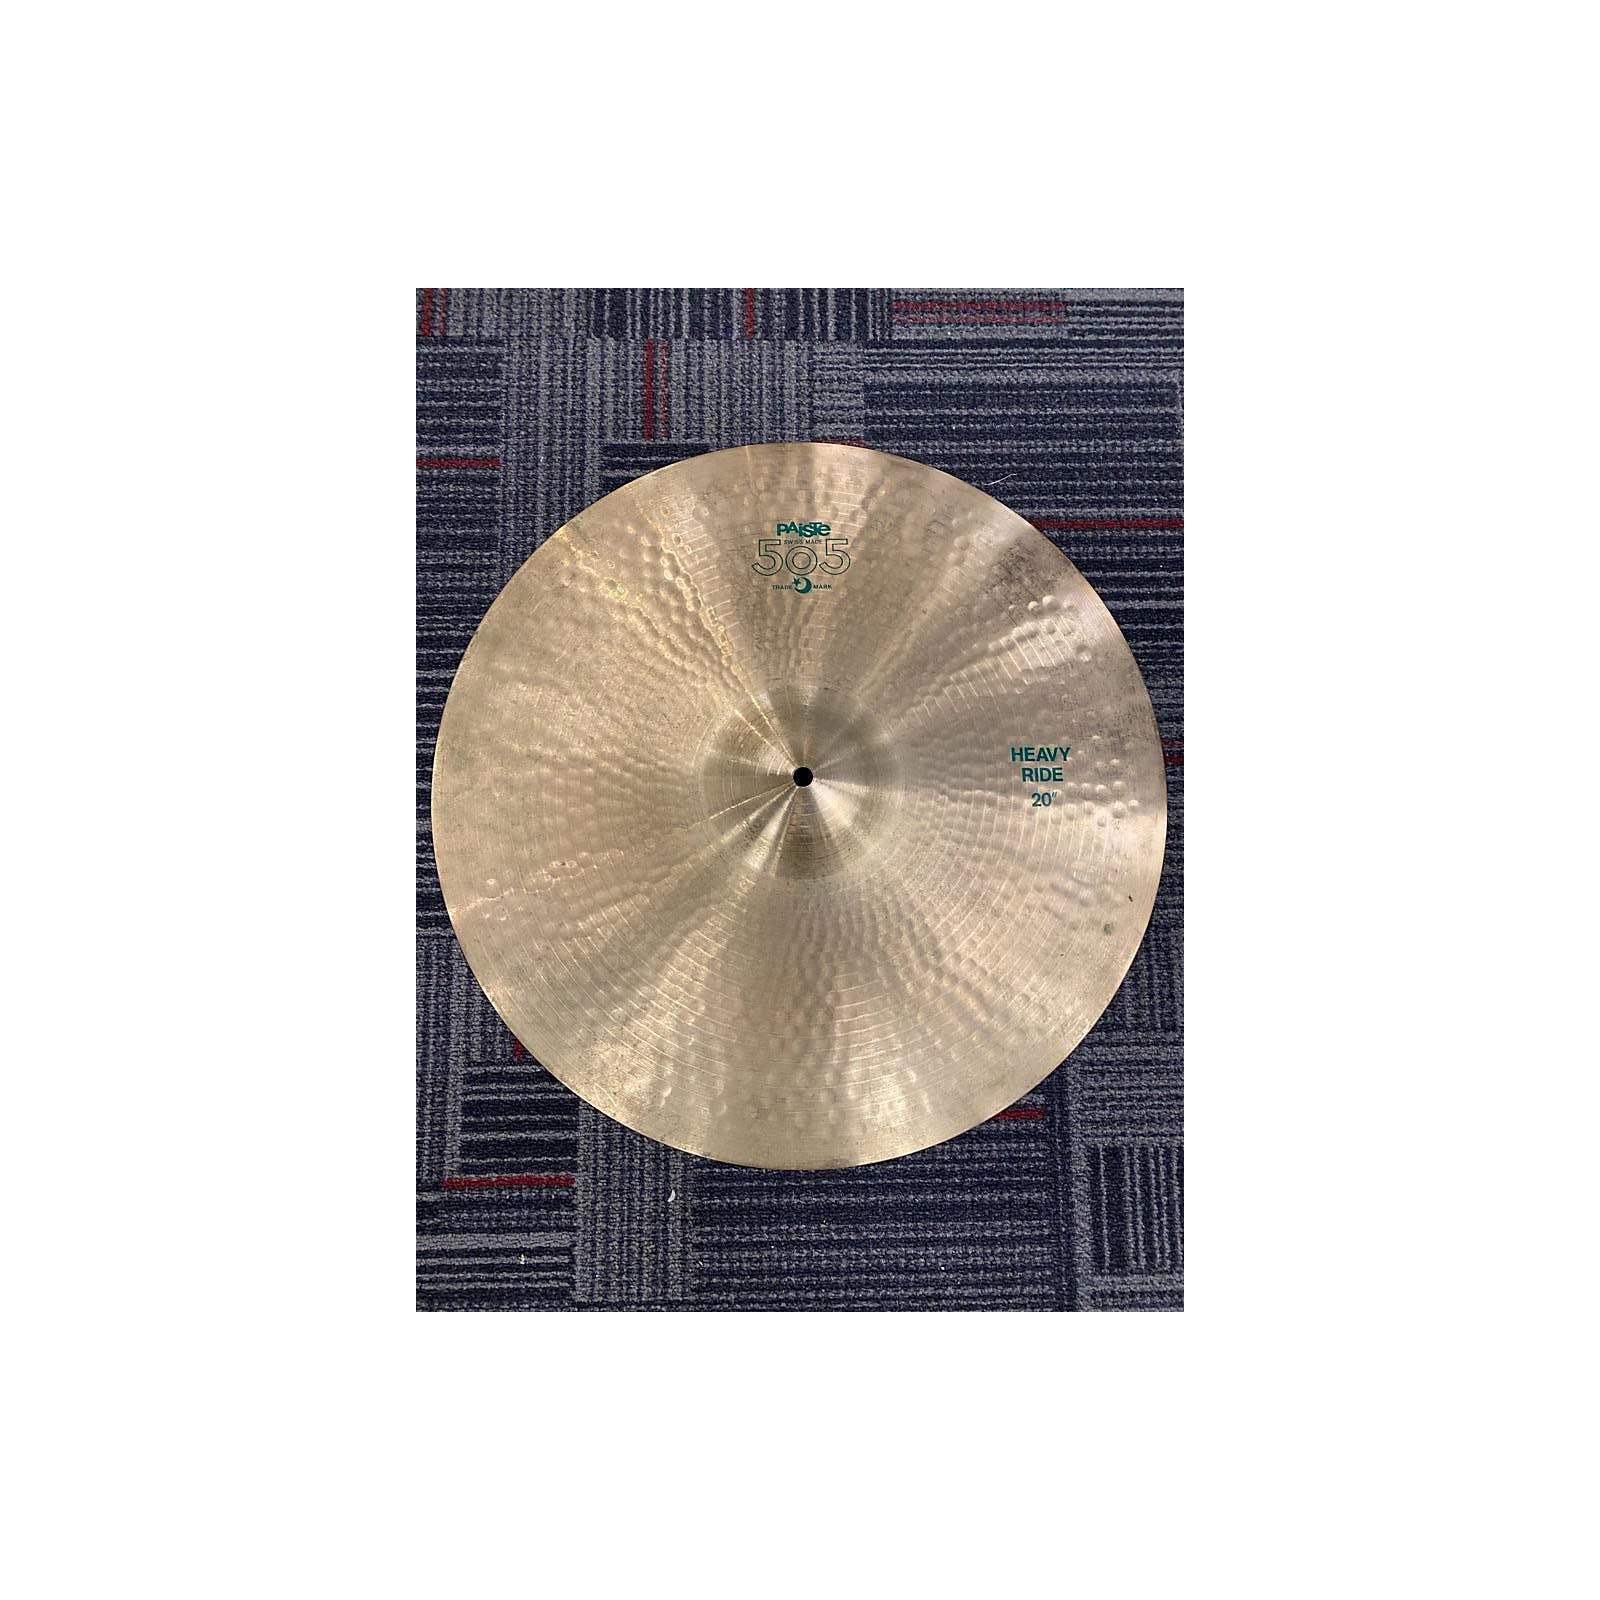 Paiste 20in 505 Heavy Ride Cymbal